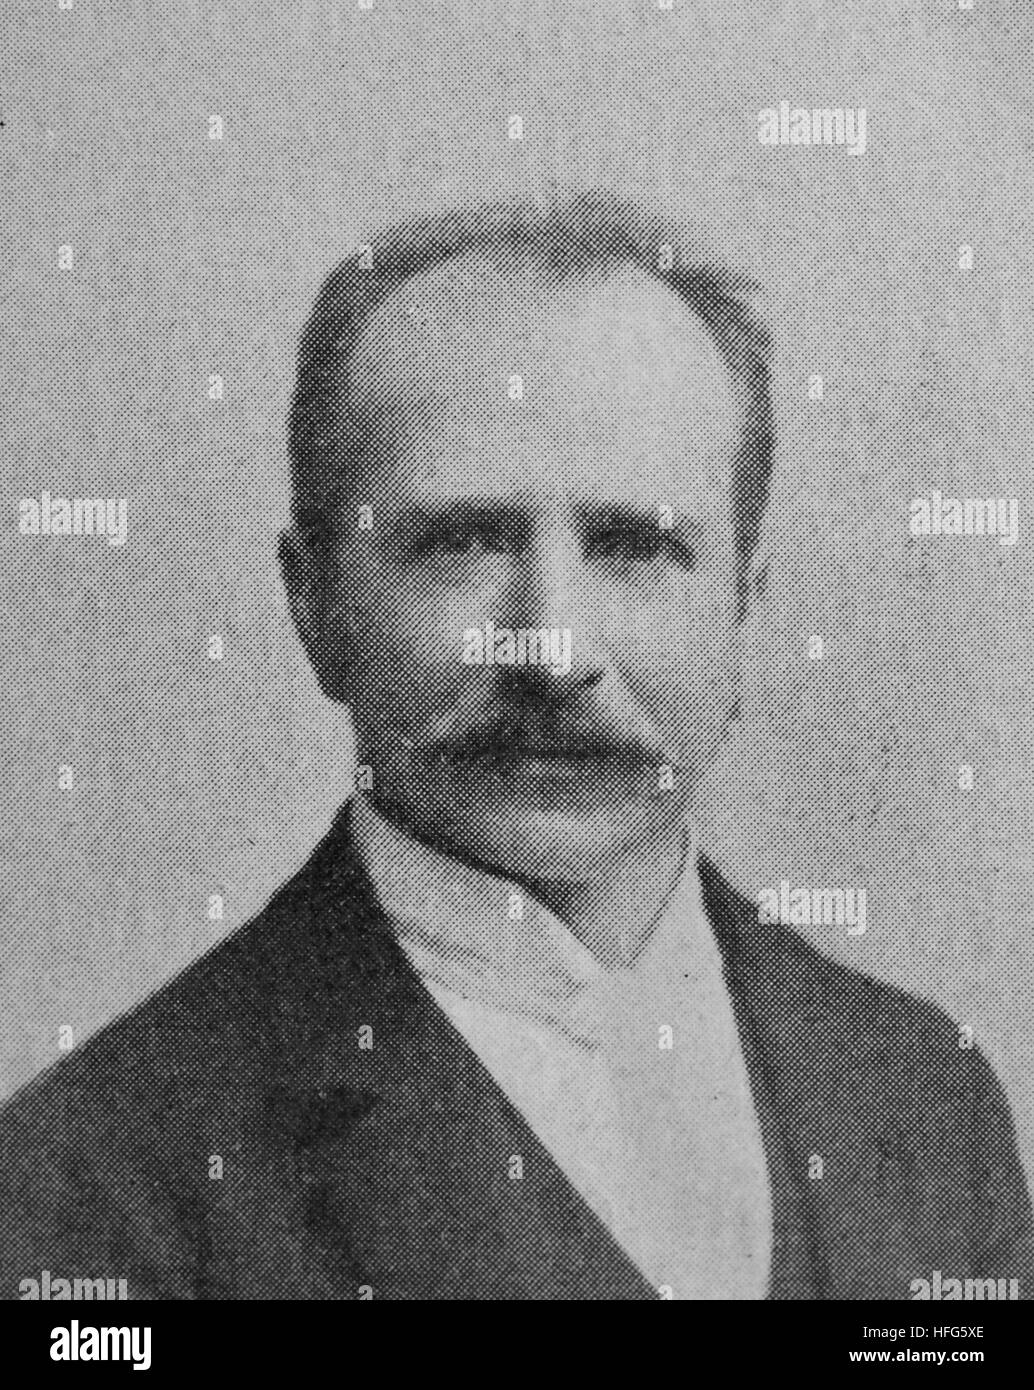 Max Friedlaender, 1852 - 1934, was a German bass singer, music editor, and musicologist, reproduction photo from - Stock Image